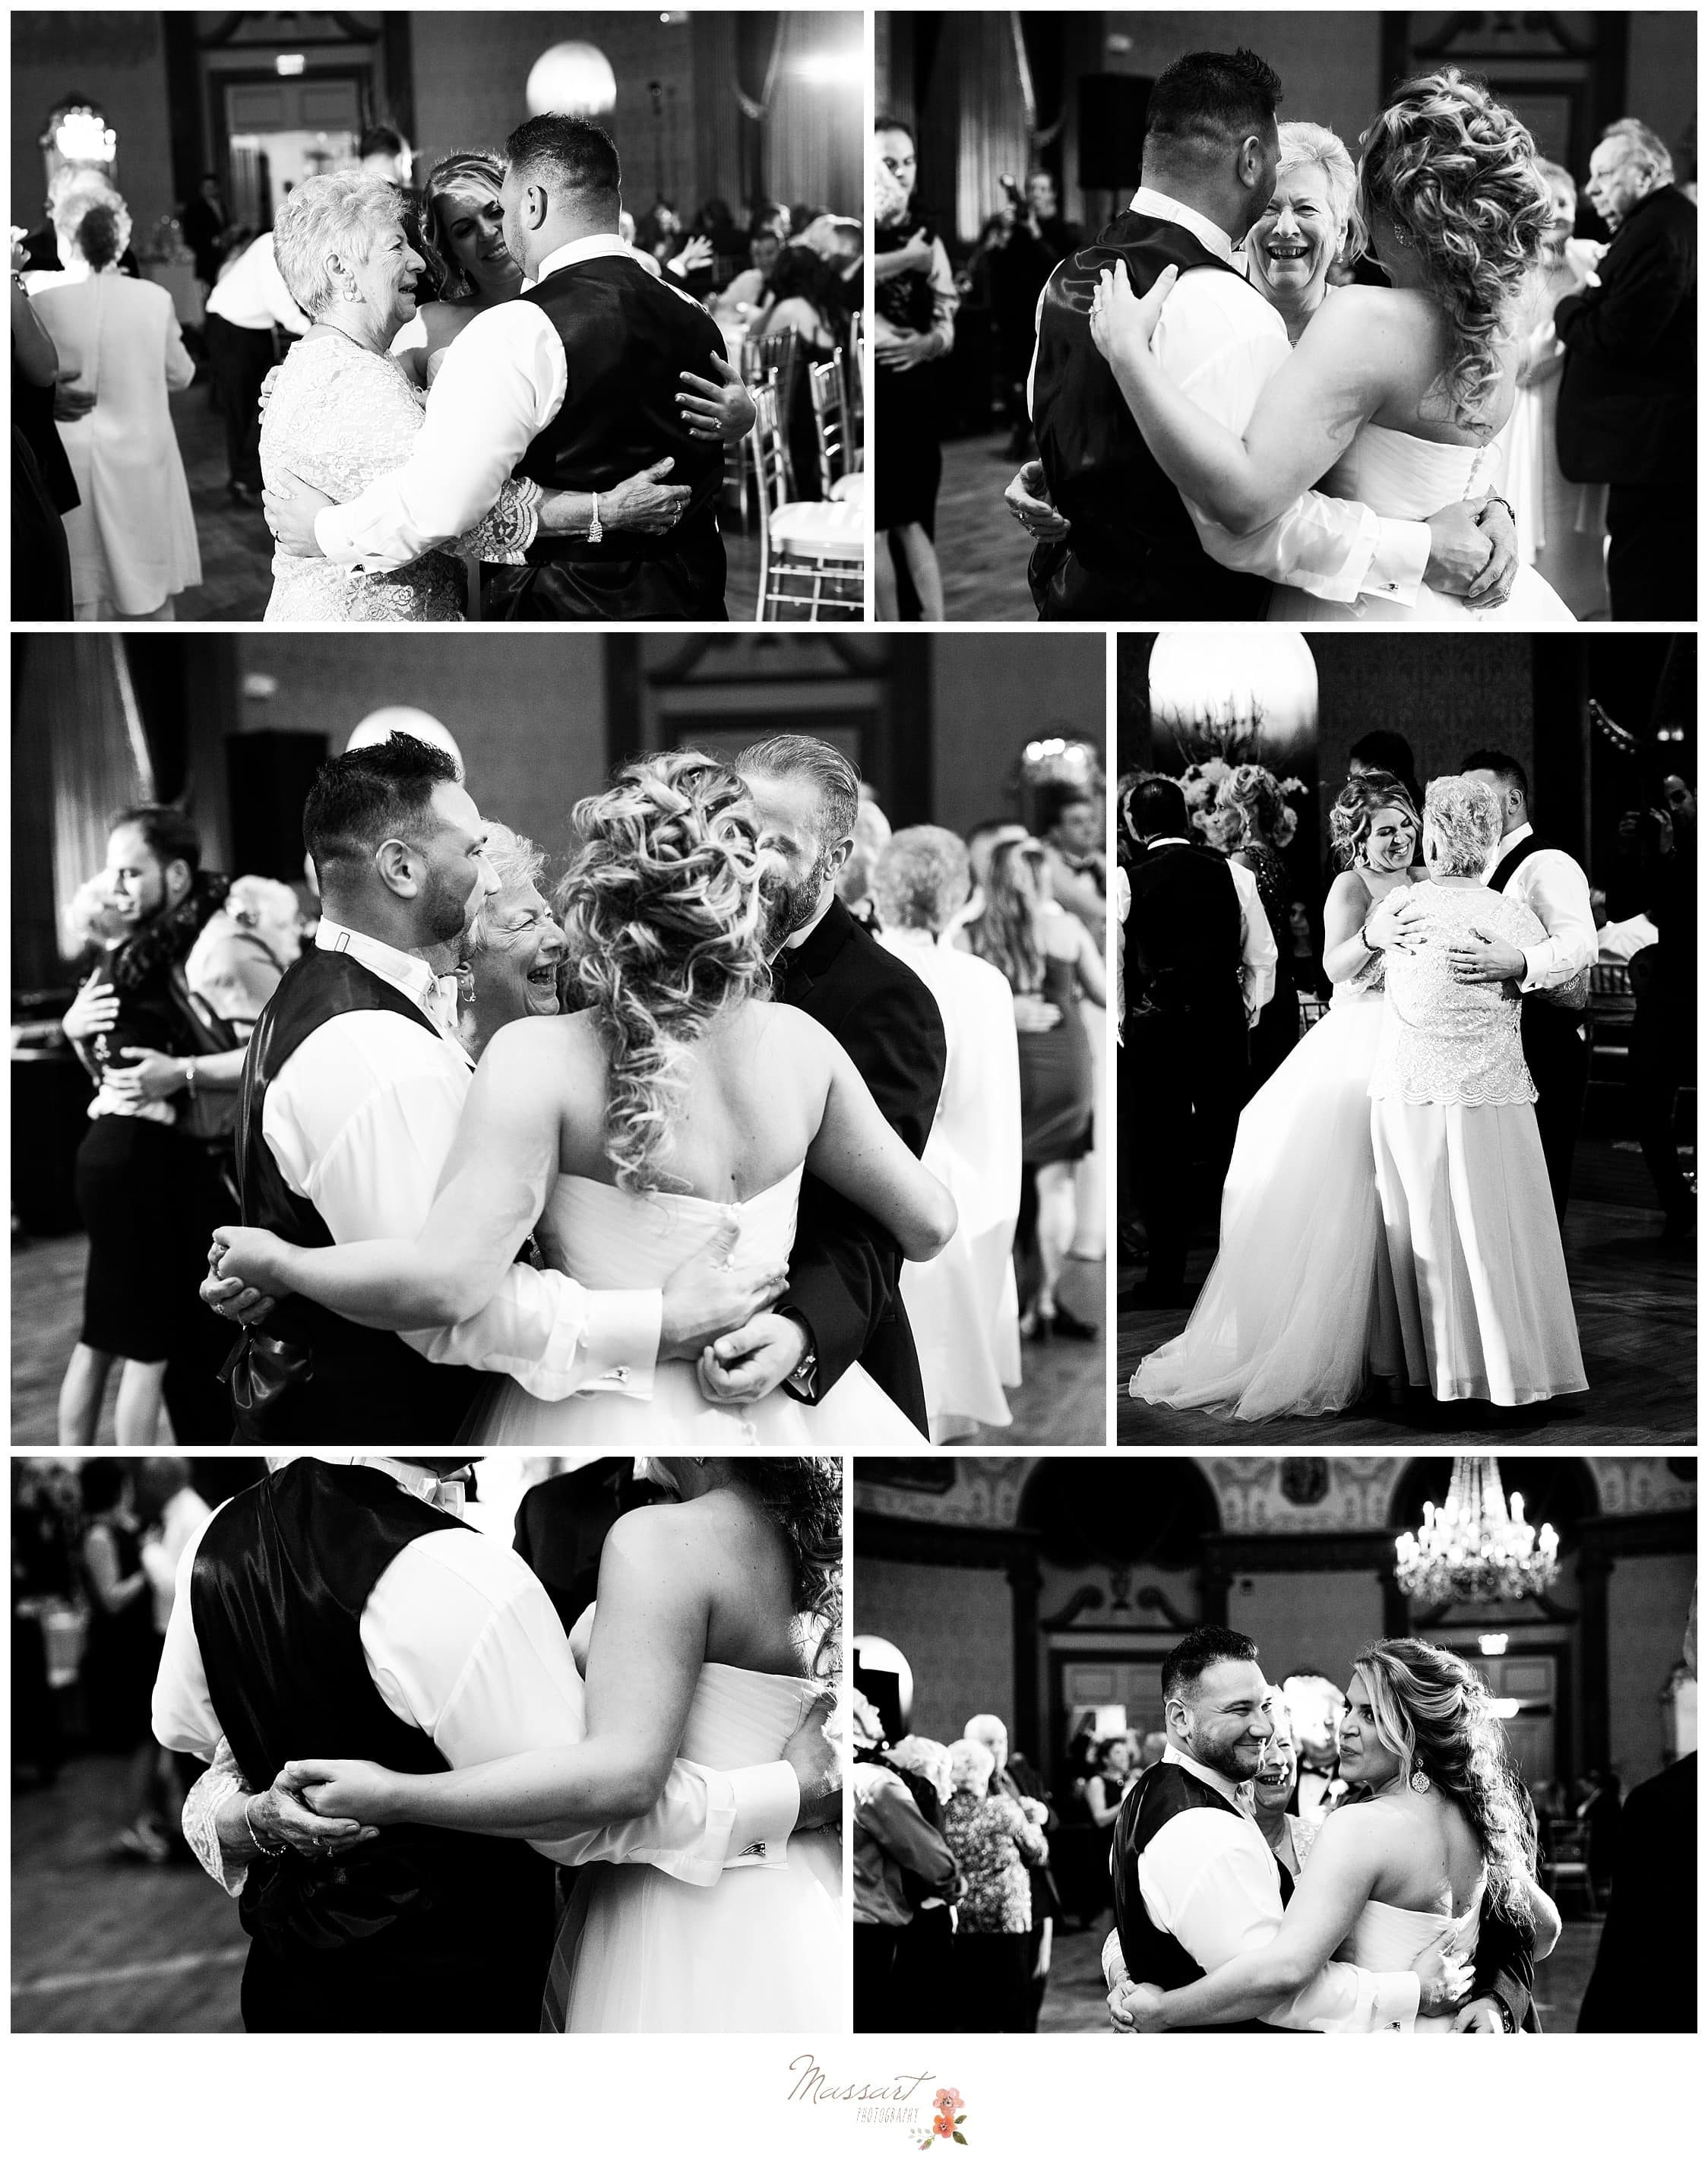 Black and white portraits of the wedding guests and the newlyweds singing at the reception photographed by Massart Photography Rhode Island